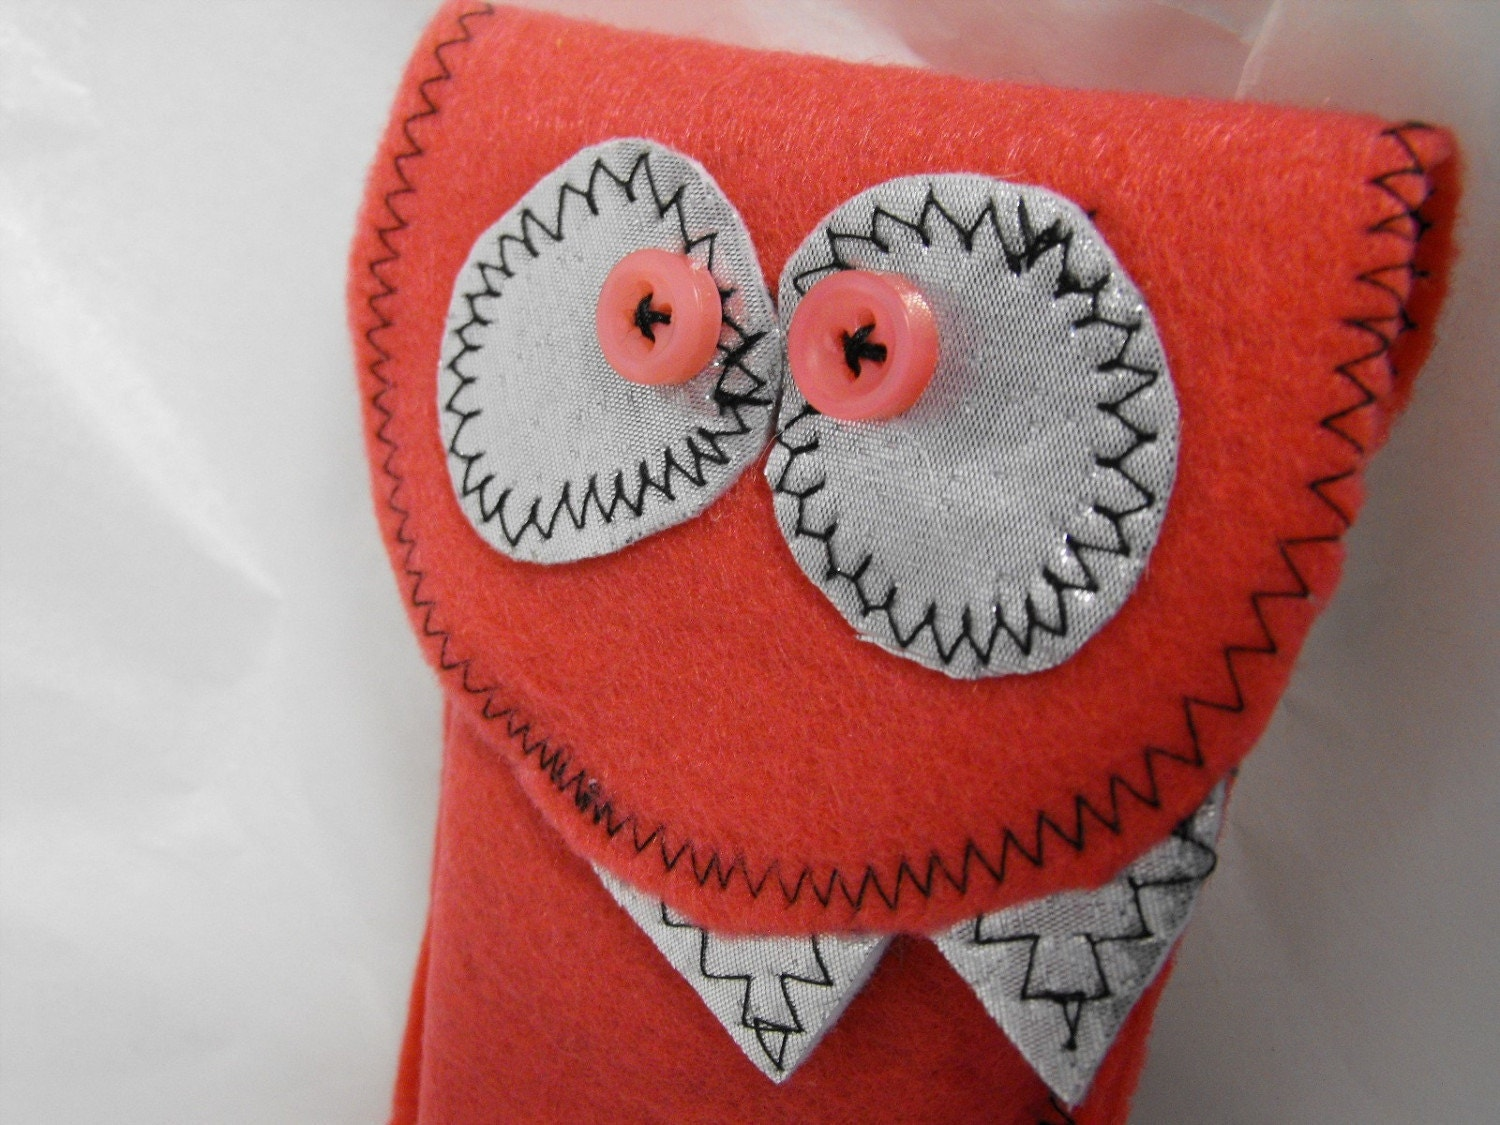 Spacey Monster - iPod / iPhone / Camera Sleeve or Cozy